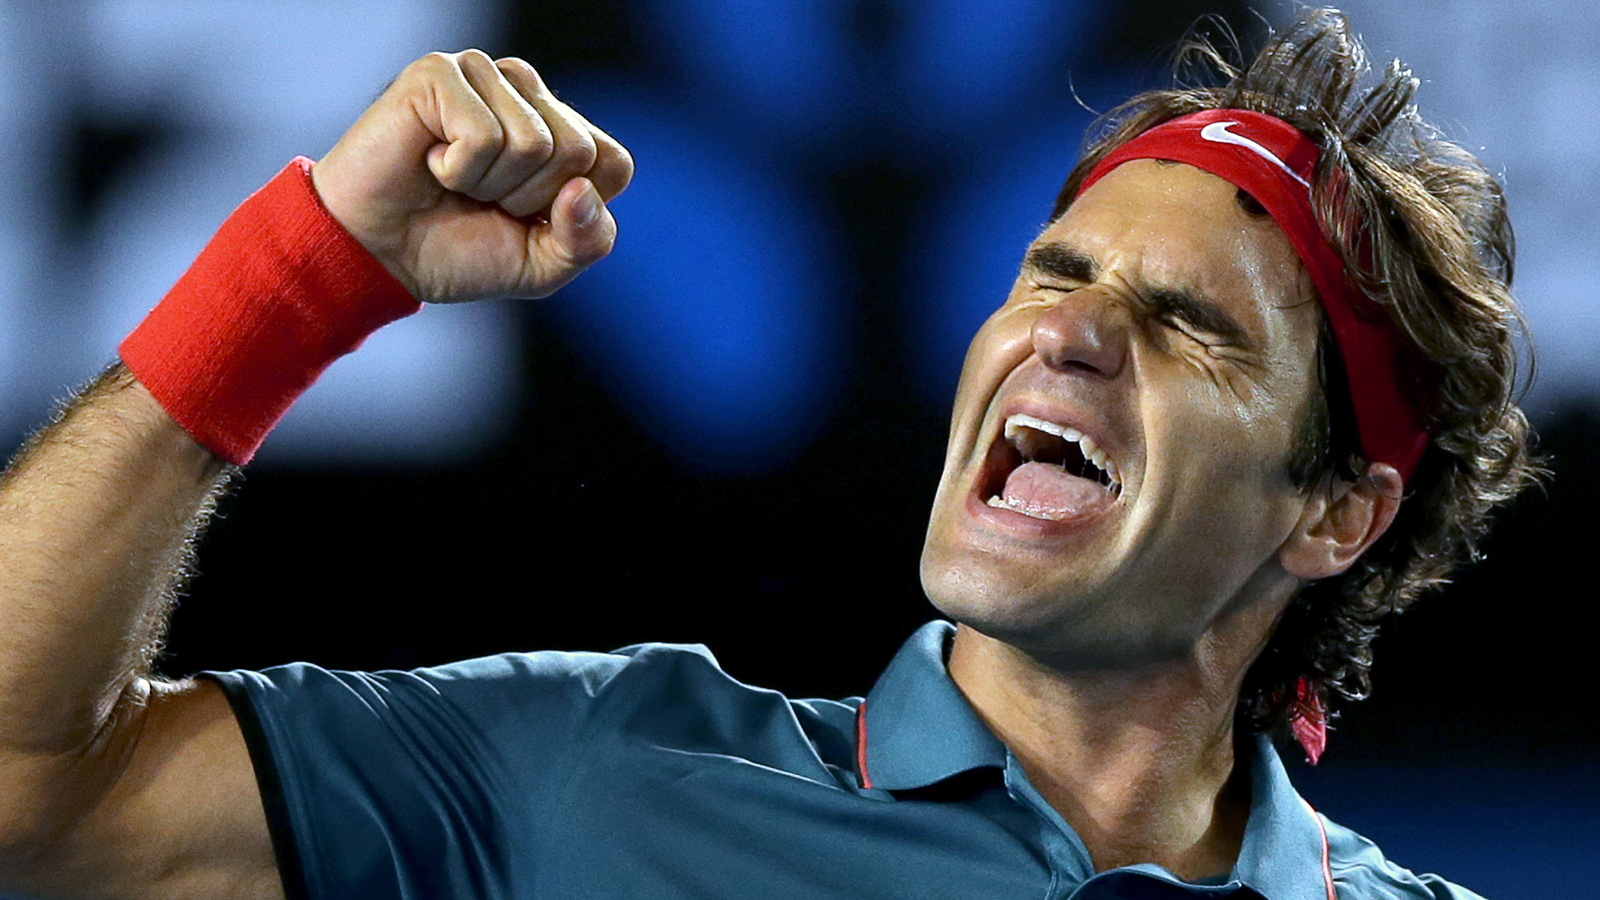 Roger Federer of Switzerland celebrates after defeating Andy Murray of Britain during their quarterfinal at the Australian Open tennis championship in Melbourne, Australia, Wednesday, Jan. 22, 2014.(AP Photo/Aaron Favila)